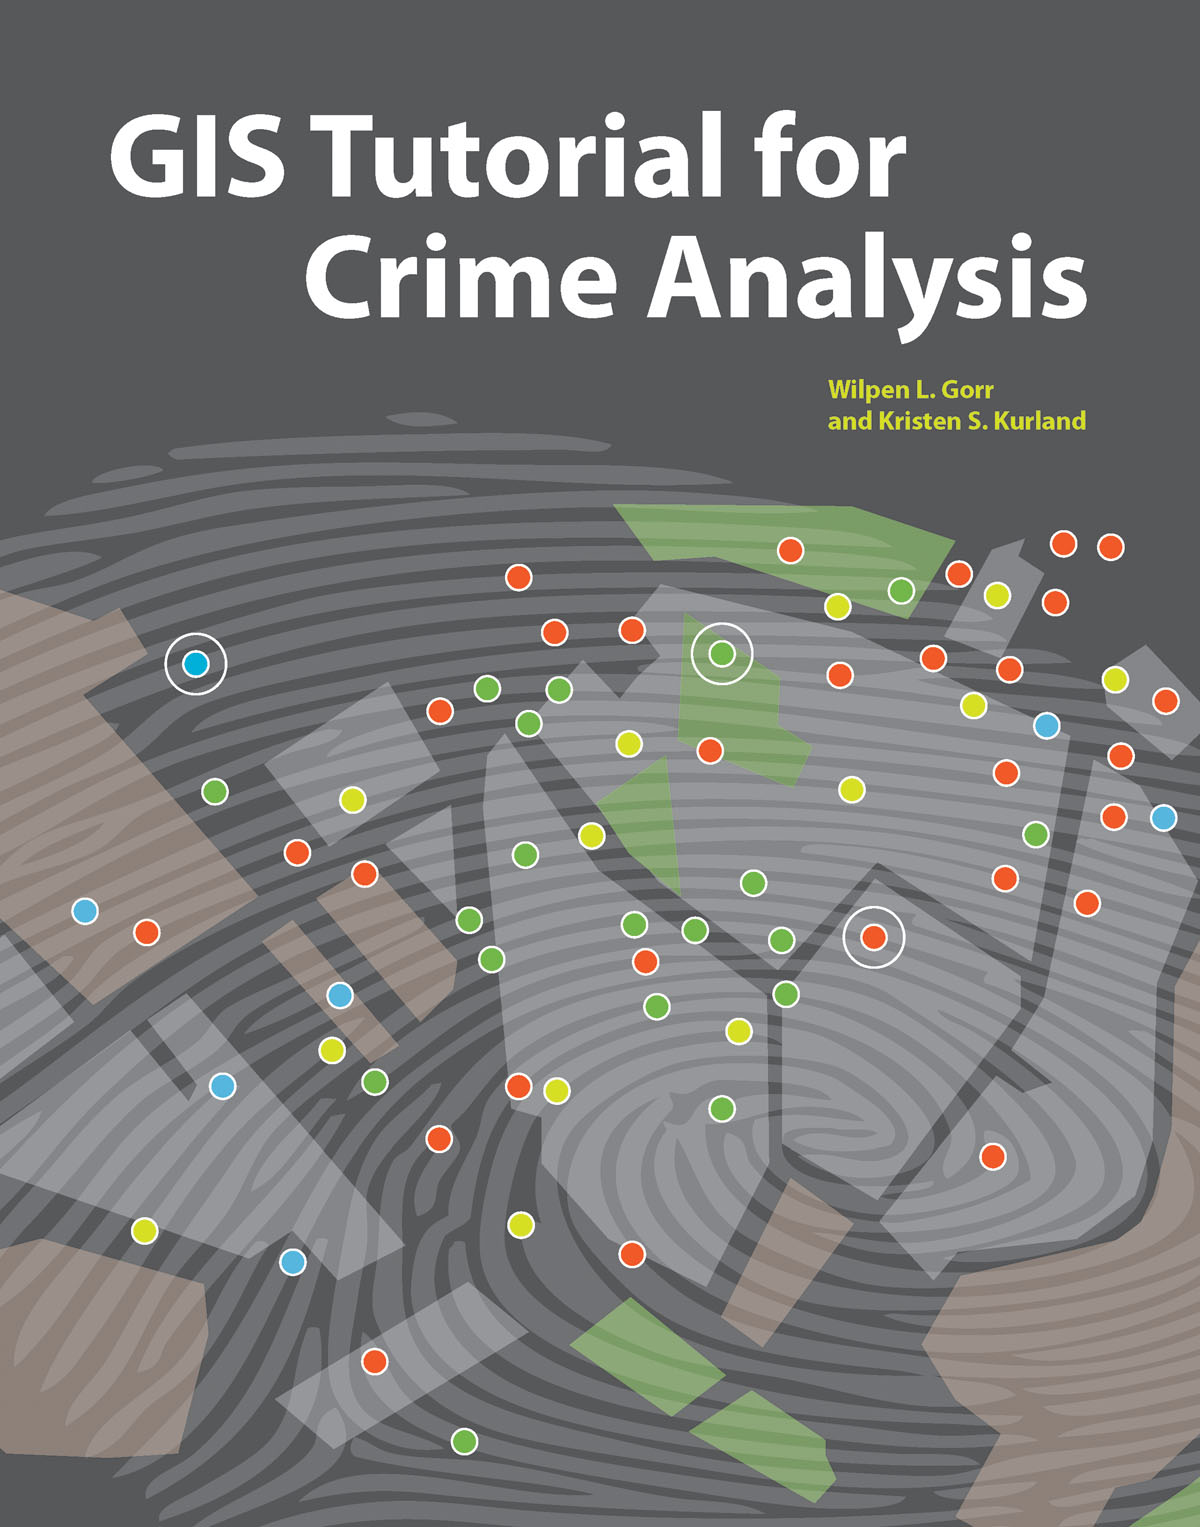 Esri Press Book Presents Latest Crime Mapping and ysis ... on computerized crime mapping, map crime mapping, historical gis, gis and hydrology, crime prevention, crime analysis, gis crime-fighting, traditional knowledge gis, uniform crime reports, routine activity theory, geographic information system, police crime mapping, white-collar crime, remote sensing application, benefits of crime mapping, geographic profiling, fixing broken windows, gis applications,